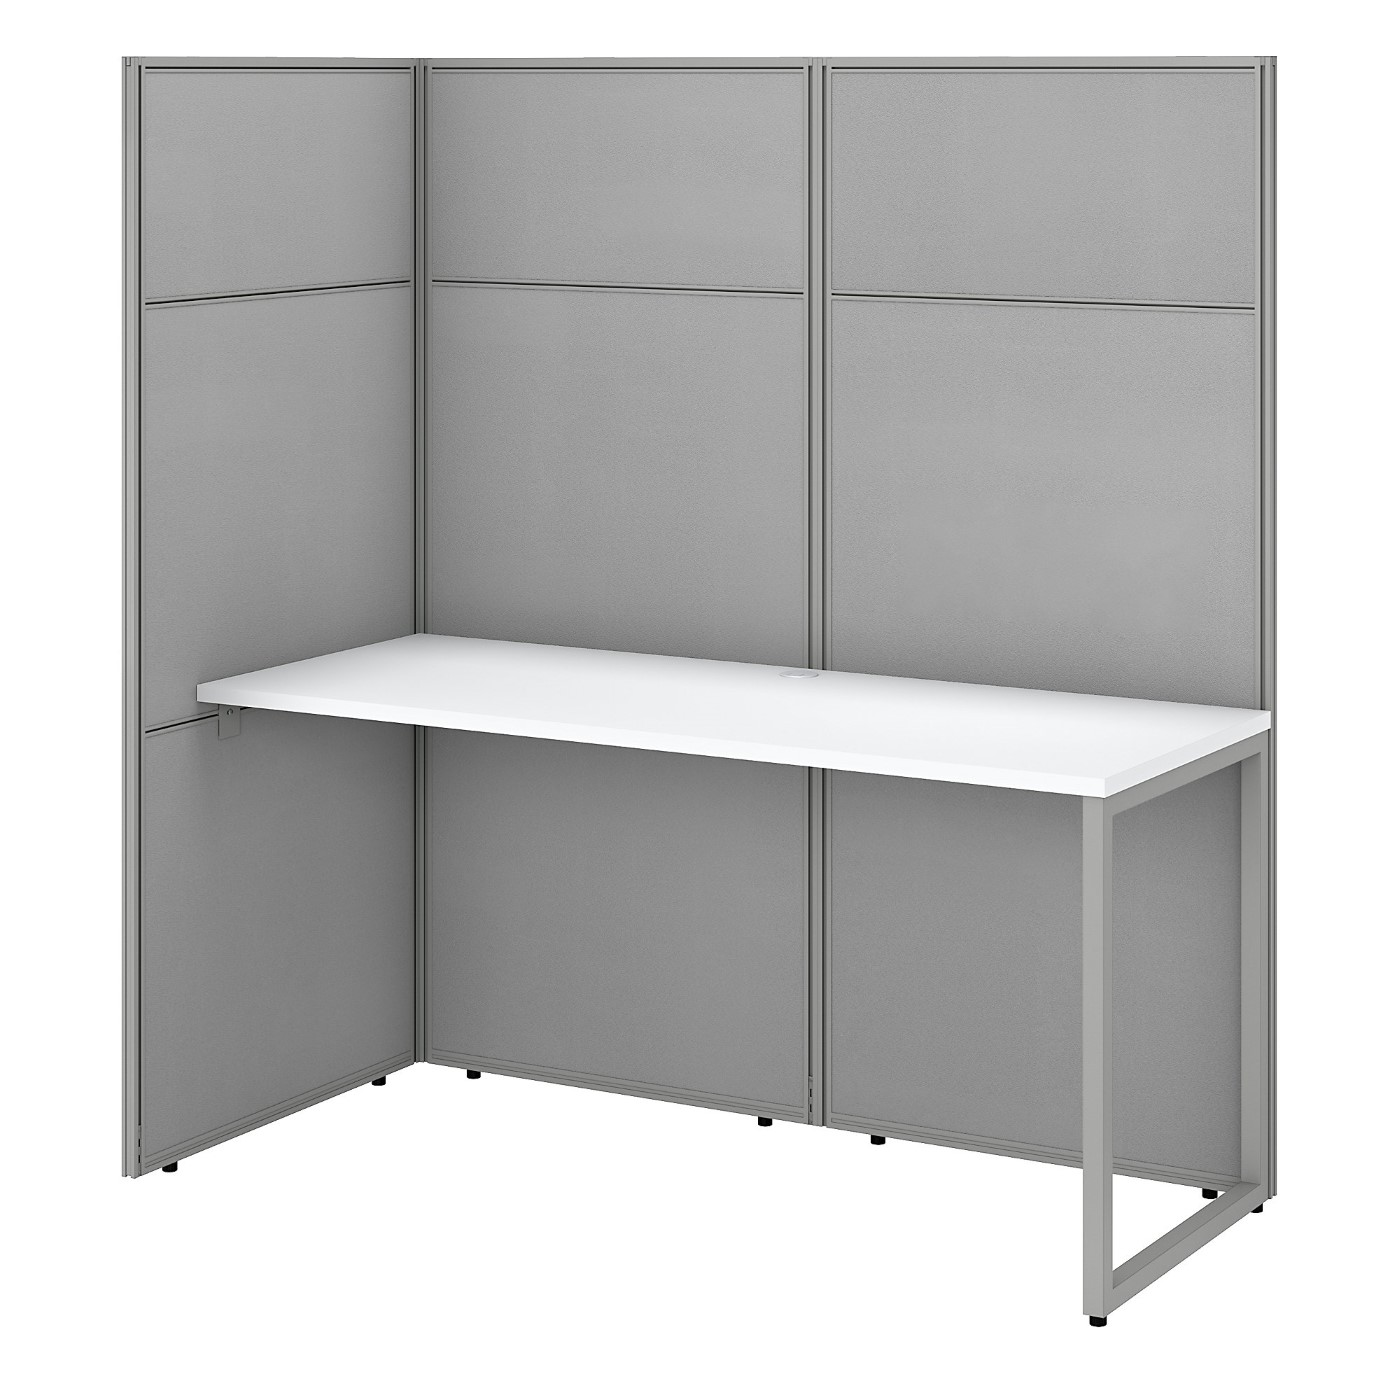 BUSH BUSINESS FURNITURE EASY OFFICE 60W CUBICLE DESK WORKSTATION WITH 66H OPEN PANELS. FREE SHIPPING